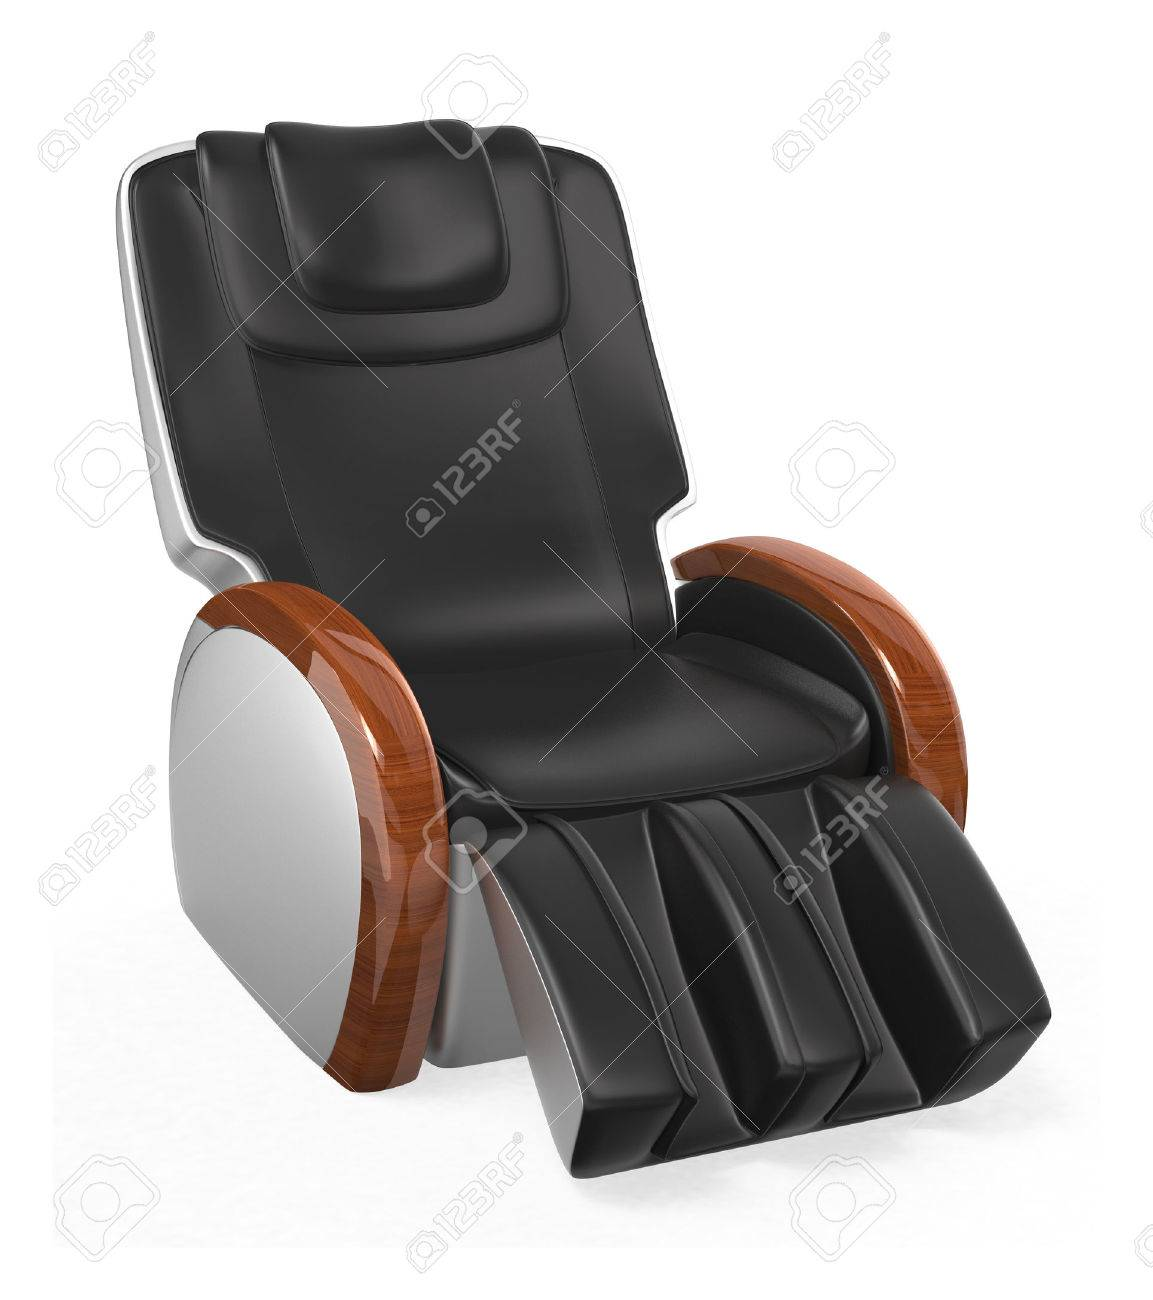 Black comfortable leather reclining massage chair with wood armrest, clipping path included  original design Stock Photo - 23476470